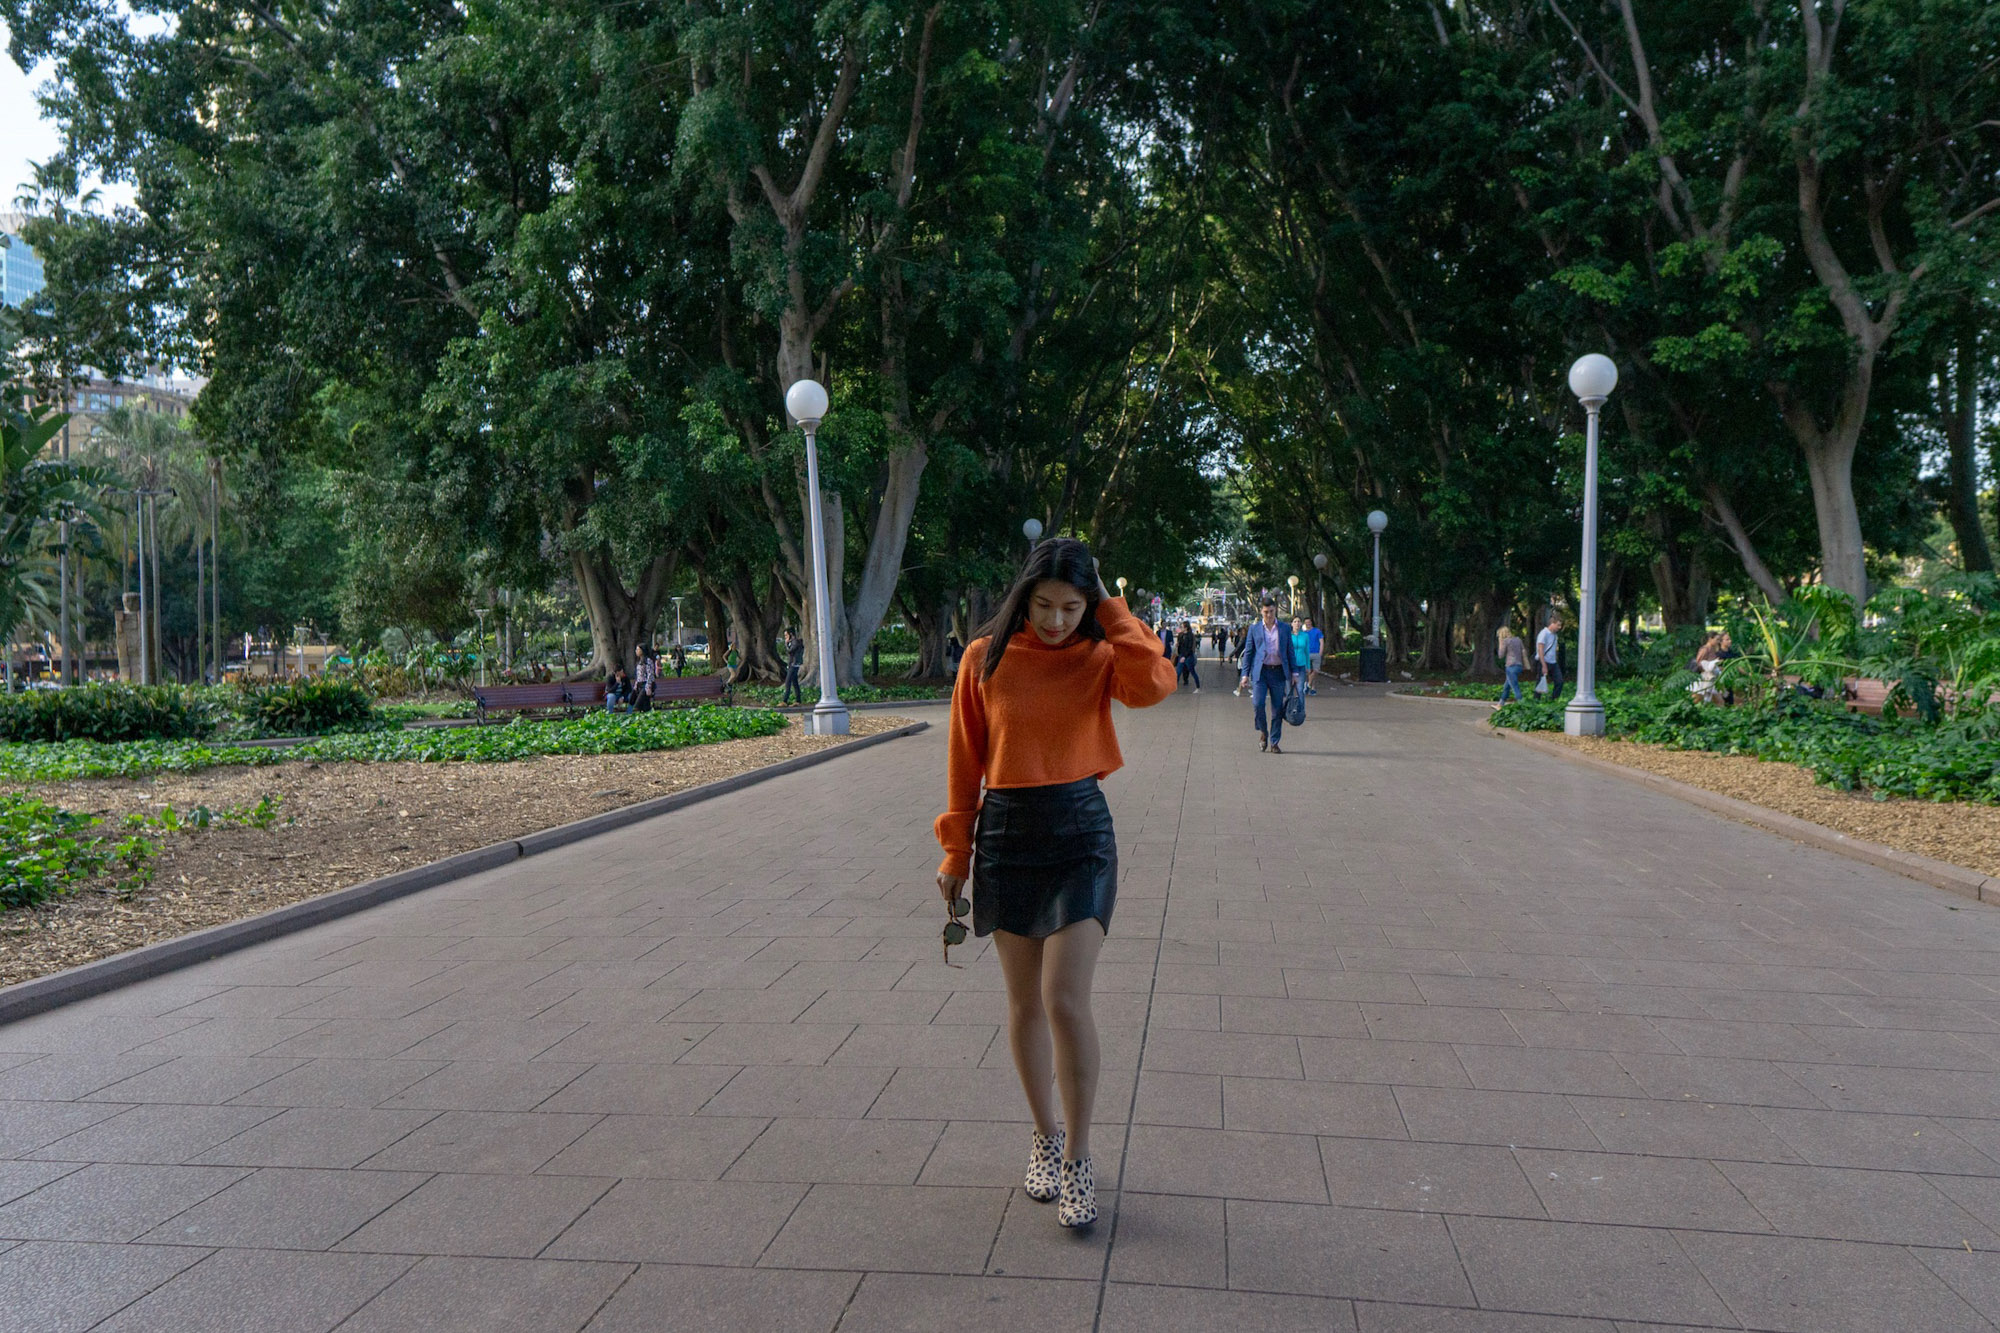 A woman with short dark hair, walking down a pathway in a park with lots of green trees. She is wearing a bright orange sweater and a black skirt.